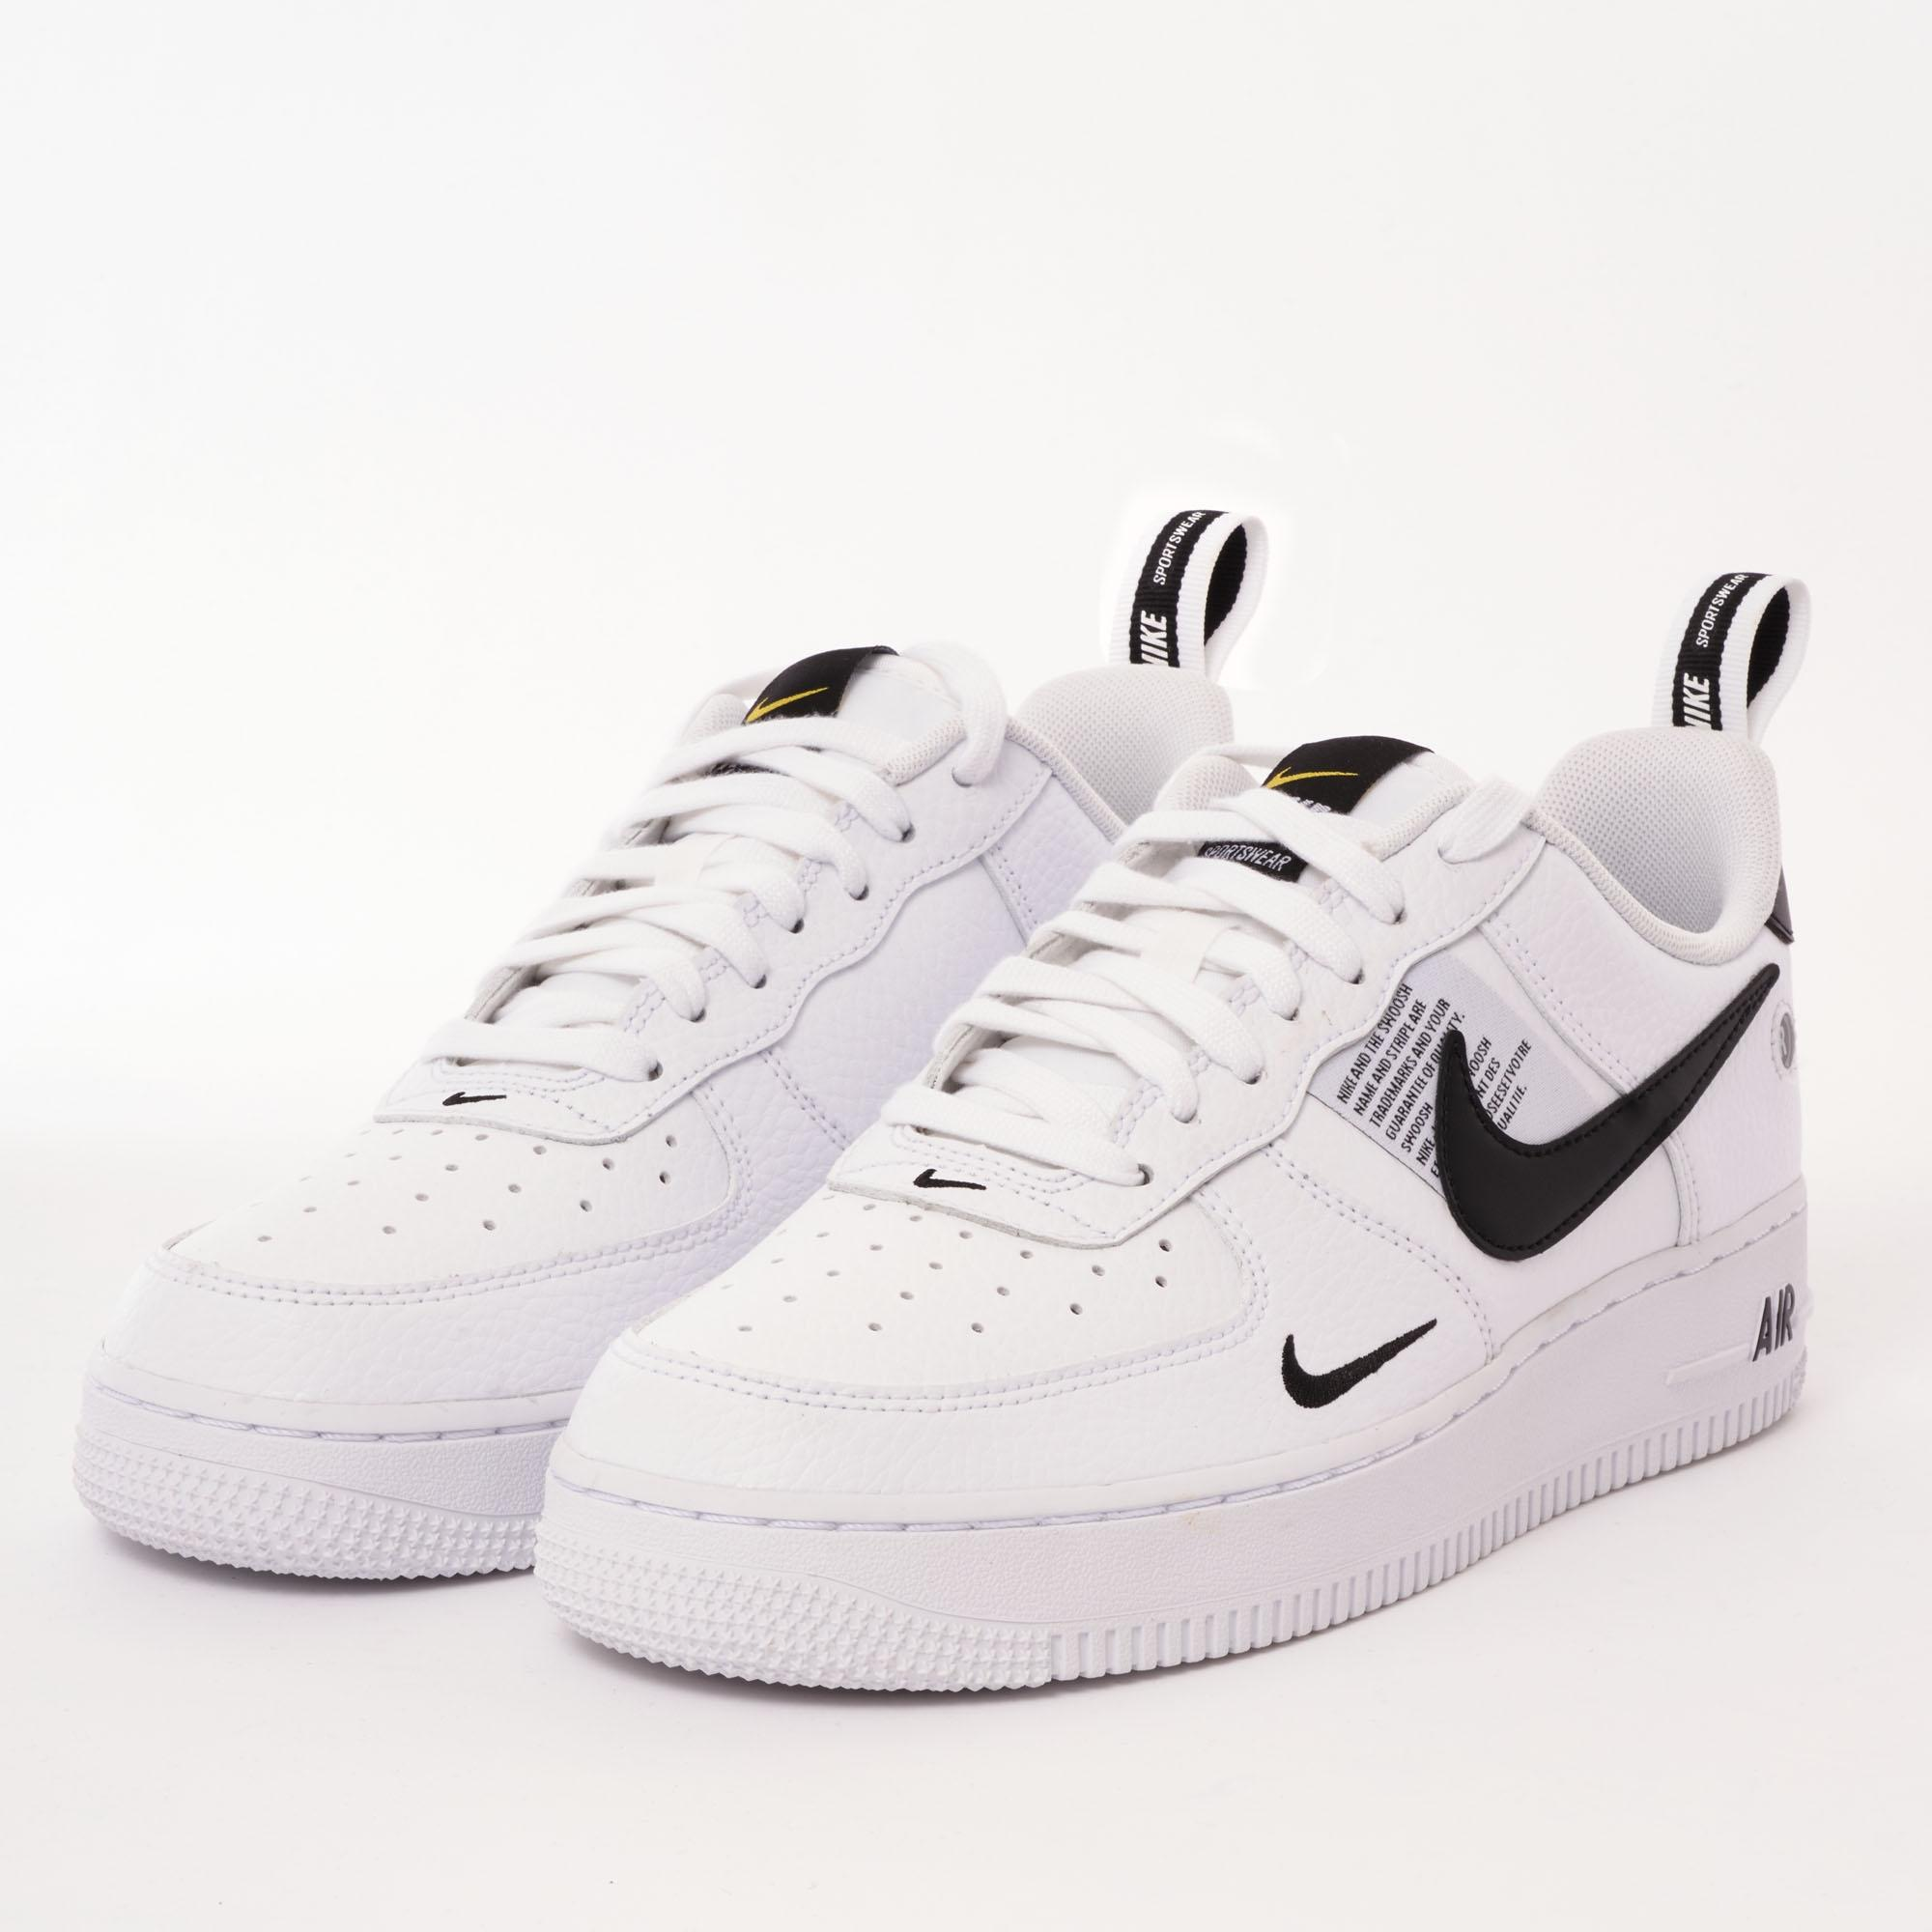 For Men Lyst Utility Lctfk1j 1 '07 Nike Lv8 Air Force sQdtrCh